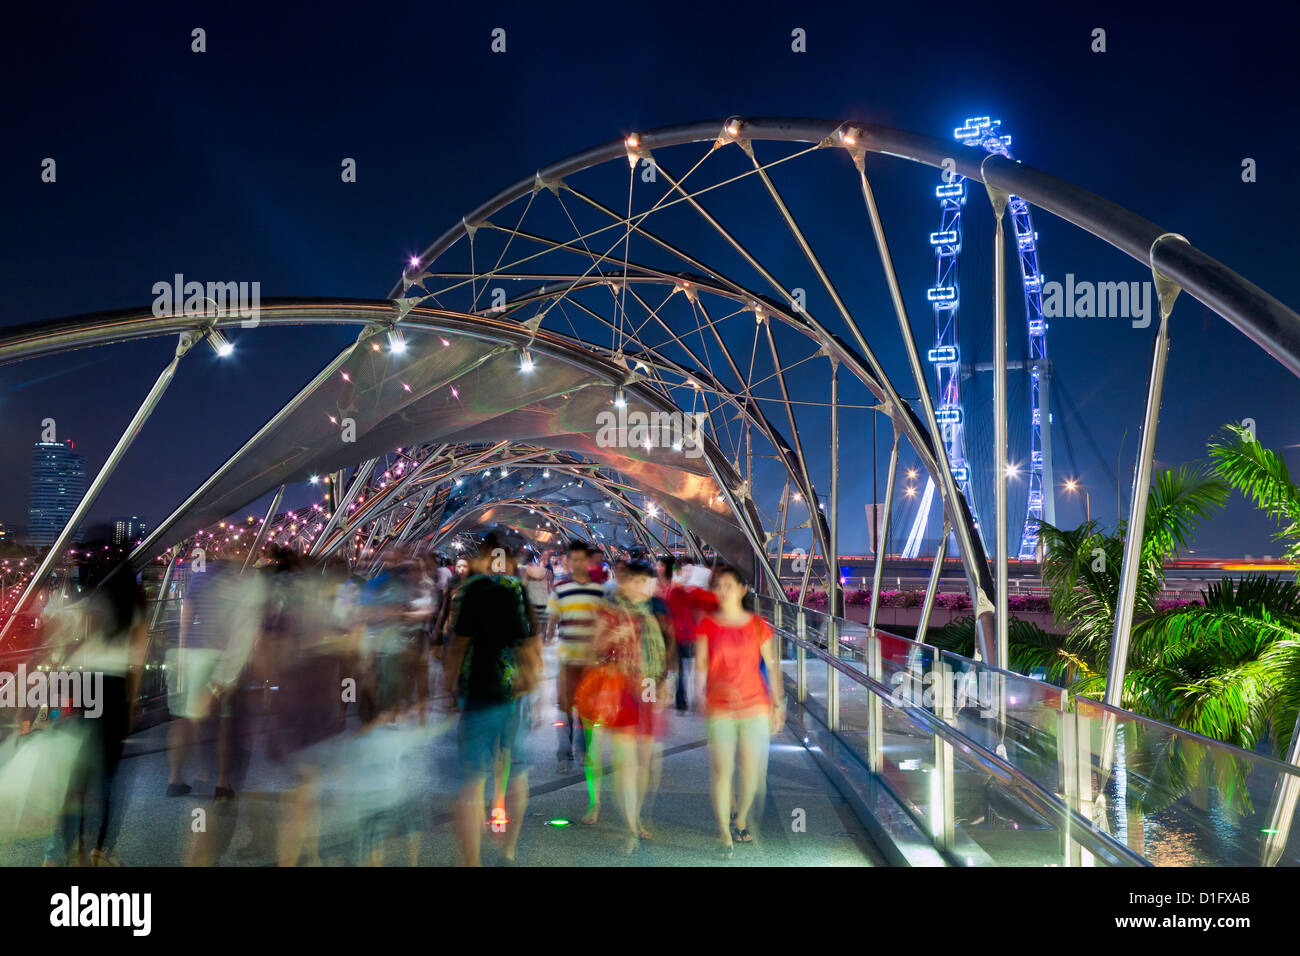 L'Helix bridge à Marina Bay et Singapore Flyer, Singapour, en Asie du Sud-Est, l'Asie Photo Stock